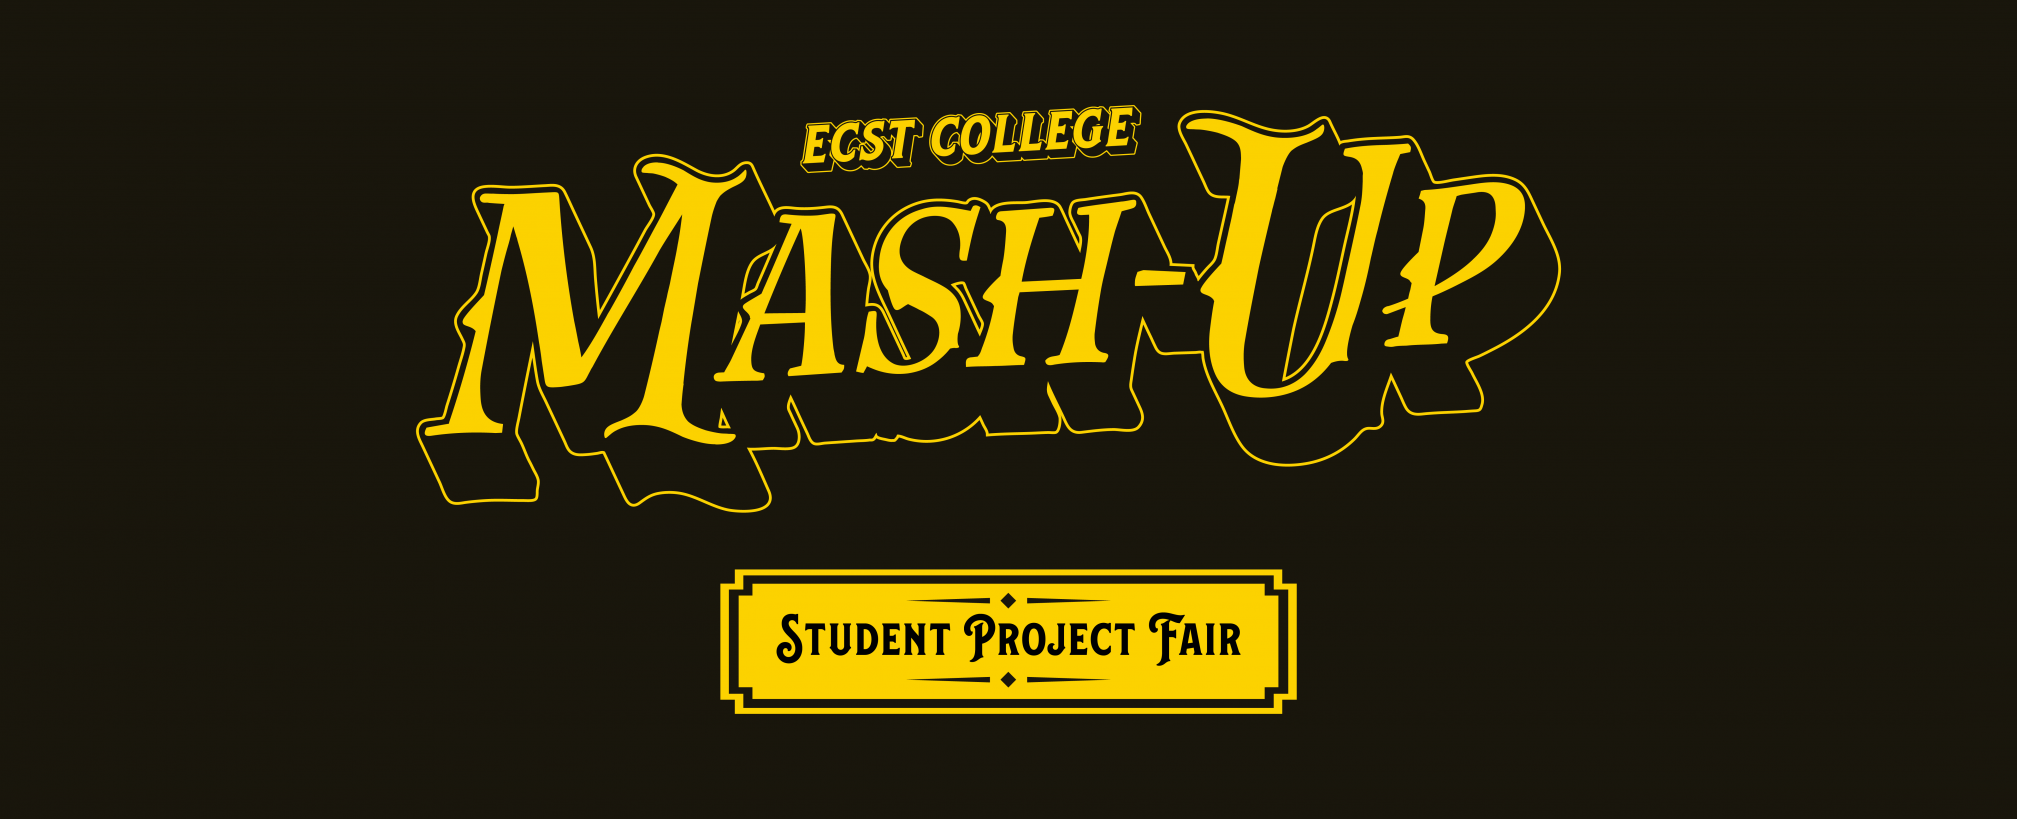 ECST MASH-UP: STUDENT PROJECT FAIR